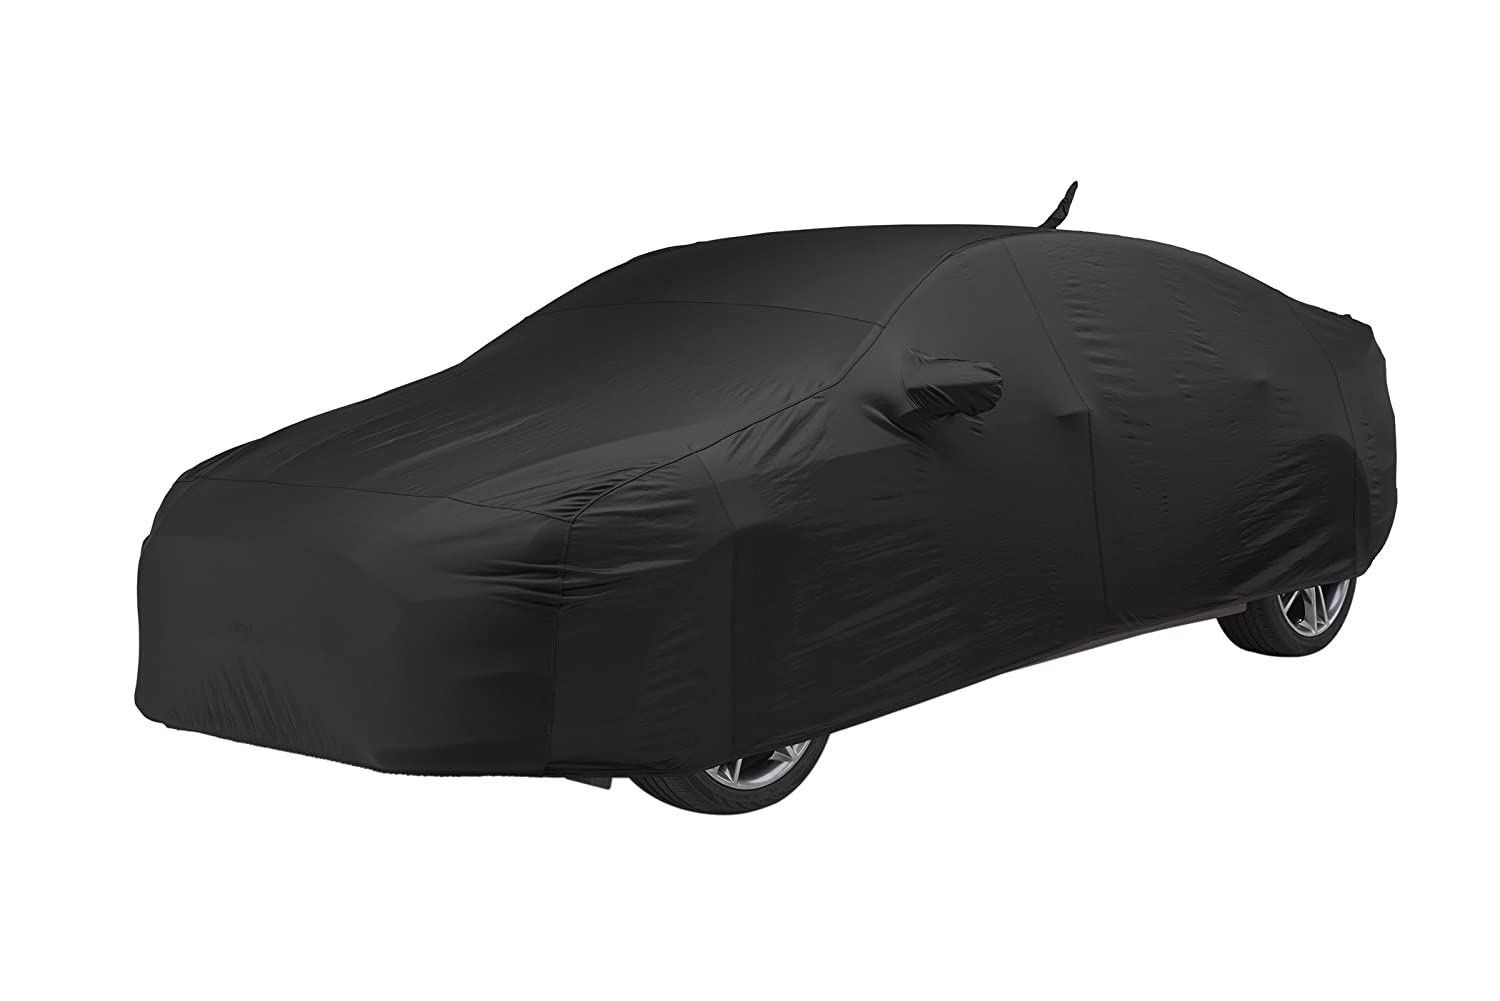 Covercraft Custom Fit Car Cover for Select Packard 1604 Models Black FS7457F5 Fleeced Satin